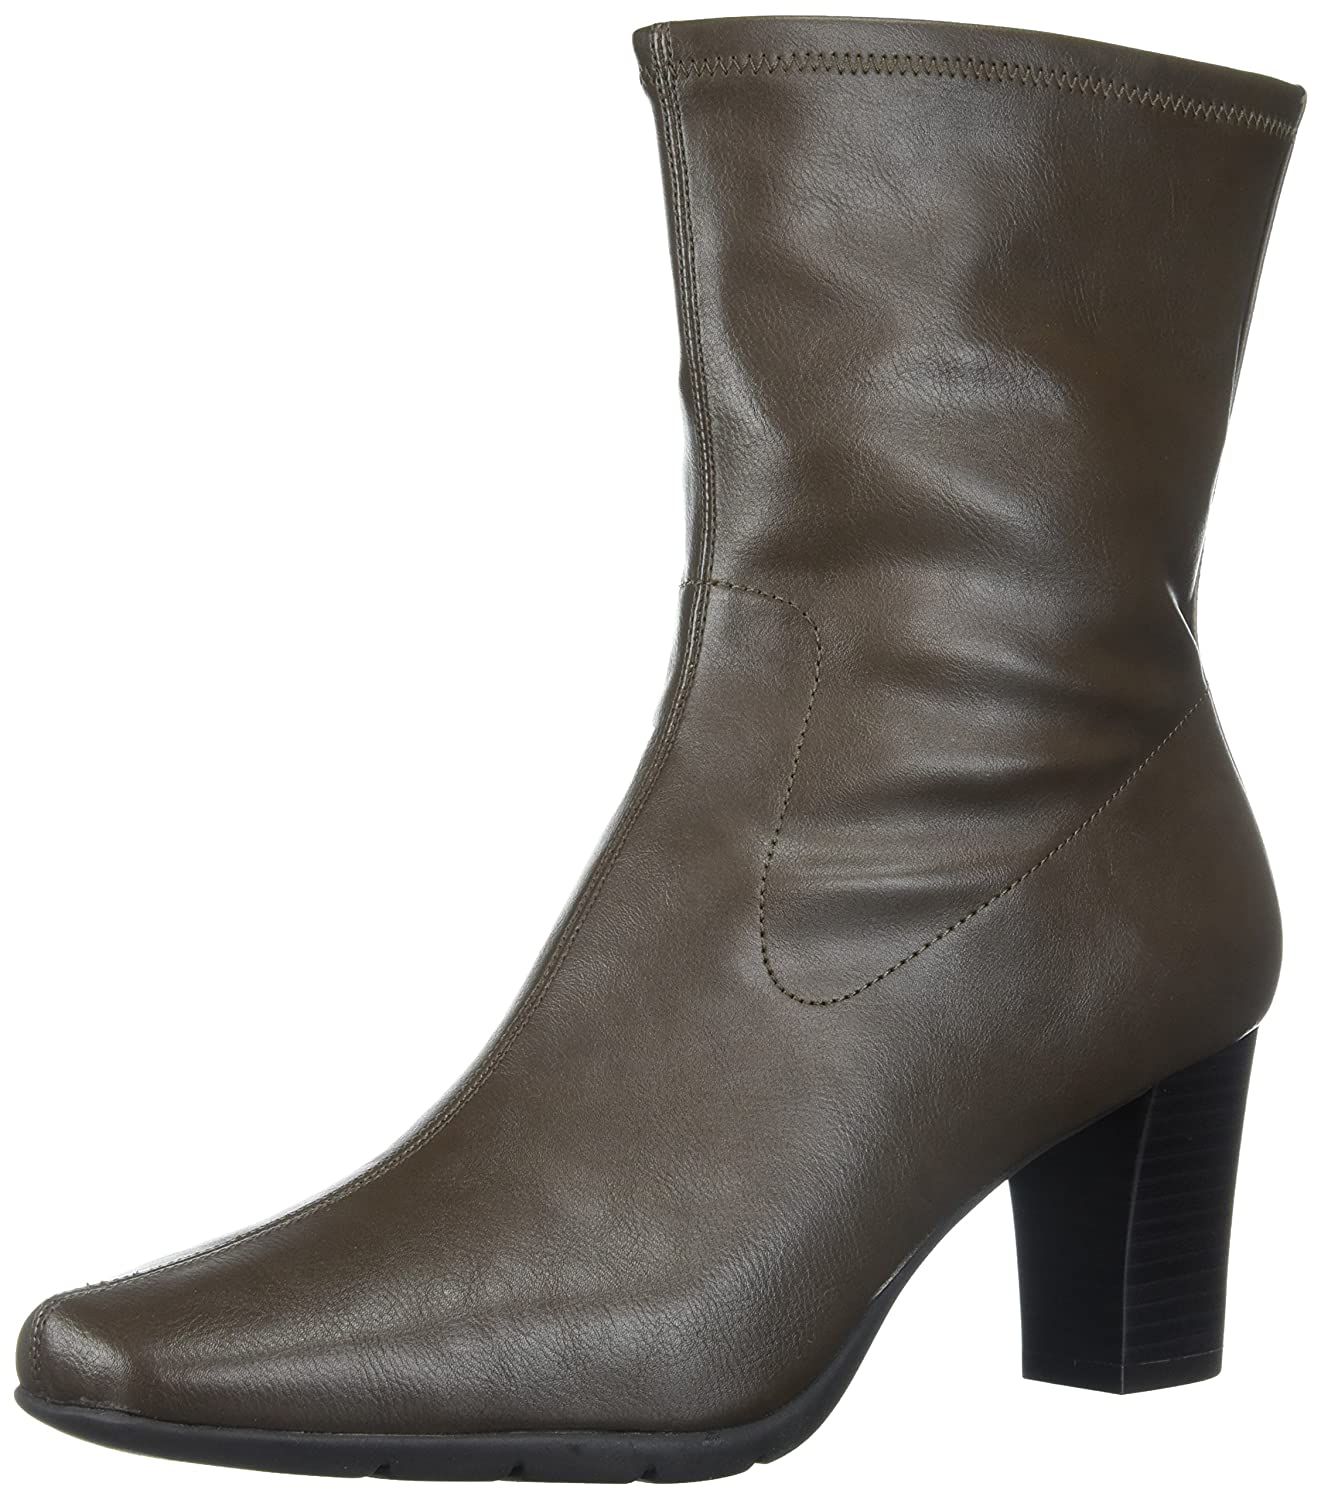 Aerosoles Women's Geneva 2 Mid Calf Boot B074H1F3KD 8 W US|Mushroom